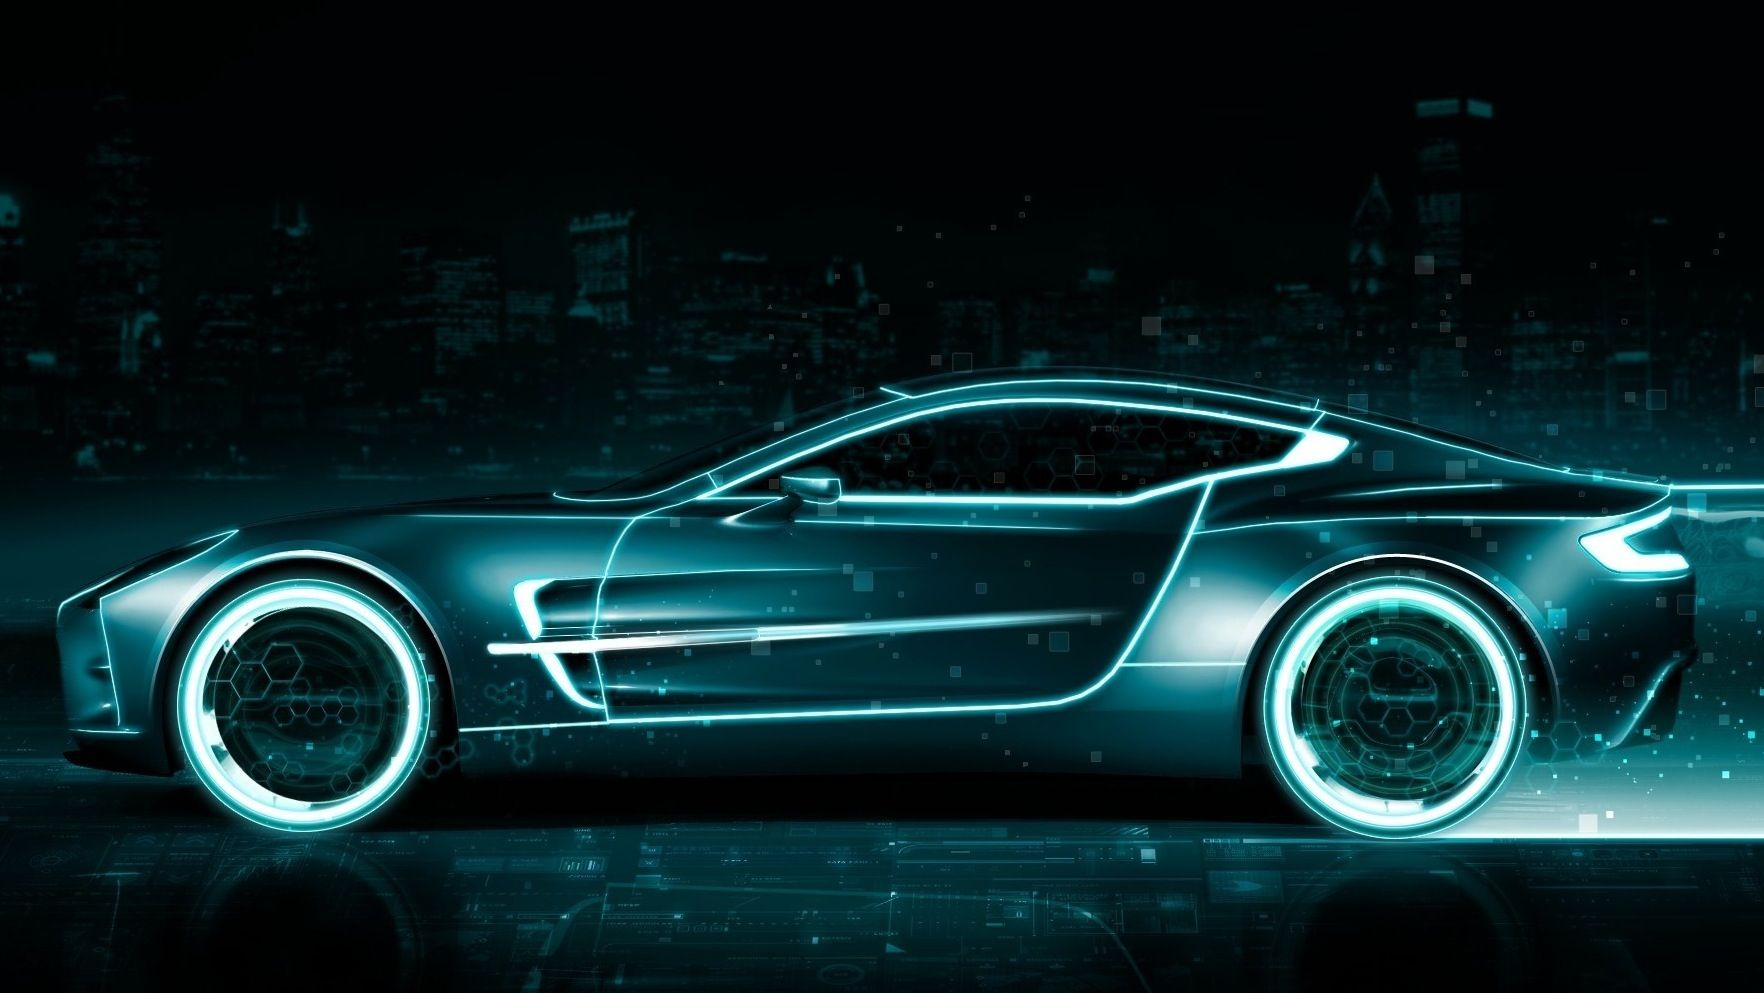 Neon Car Lights: Neon Car, Cars And Planes